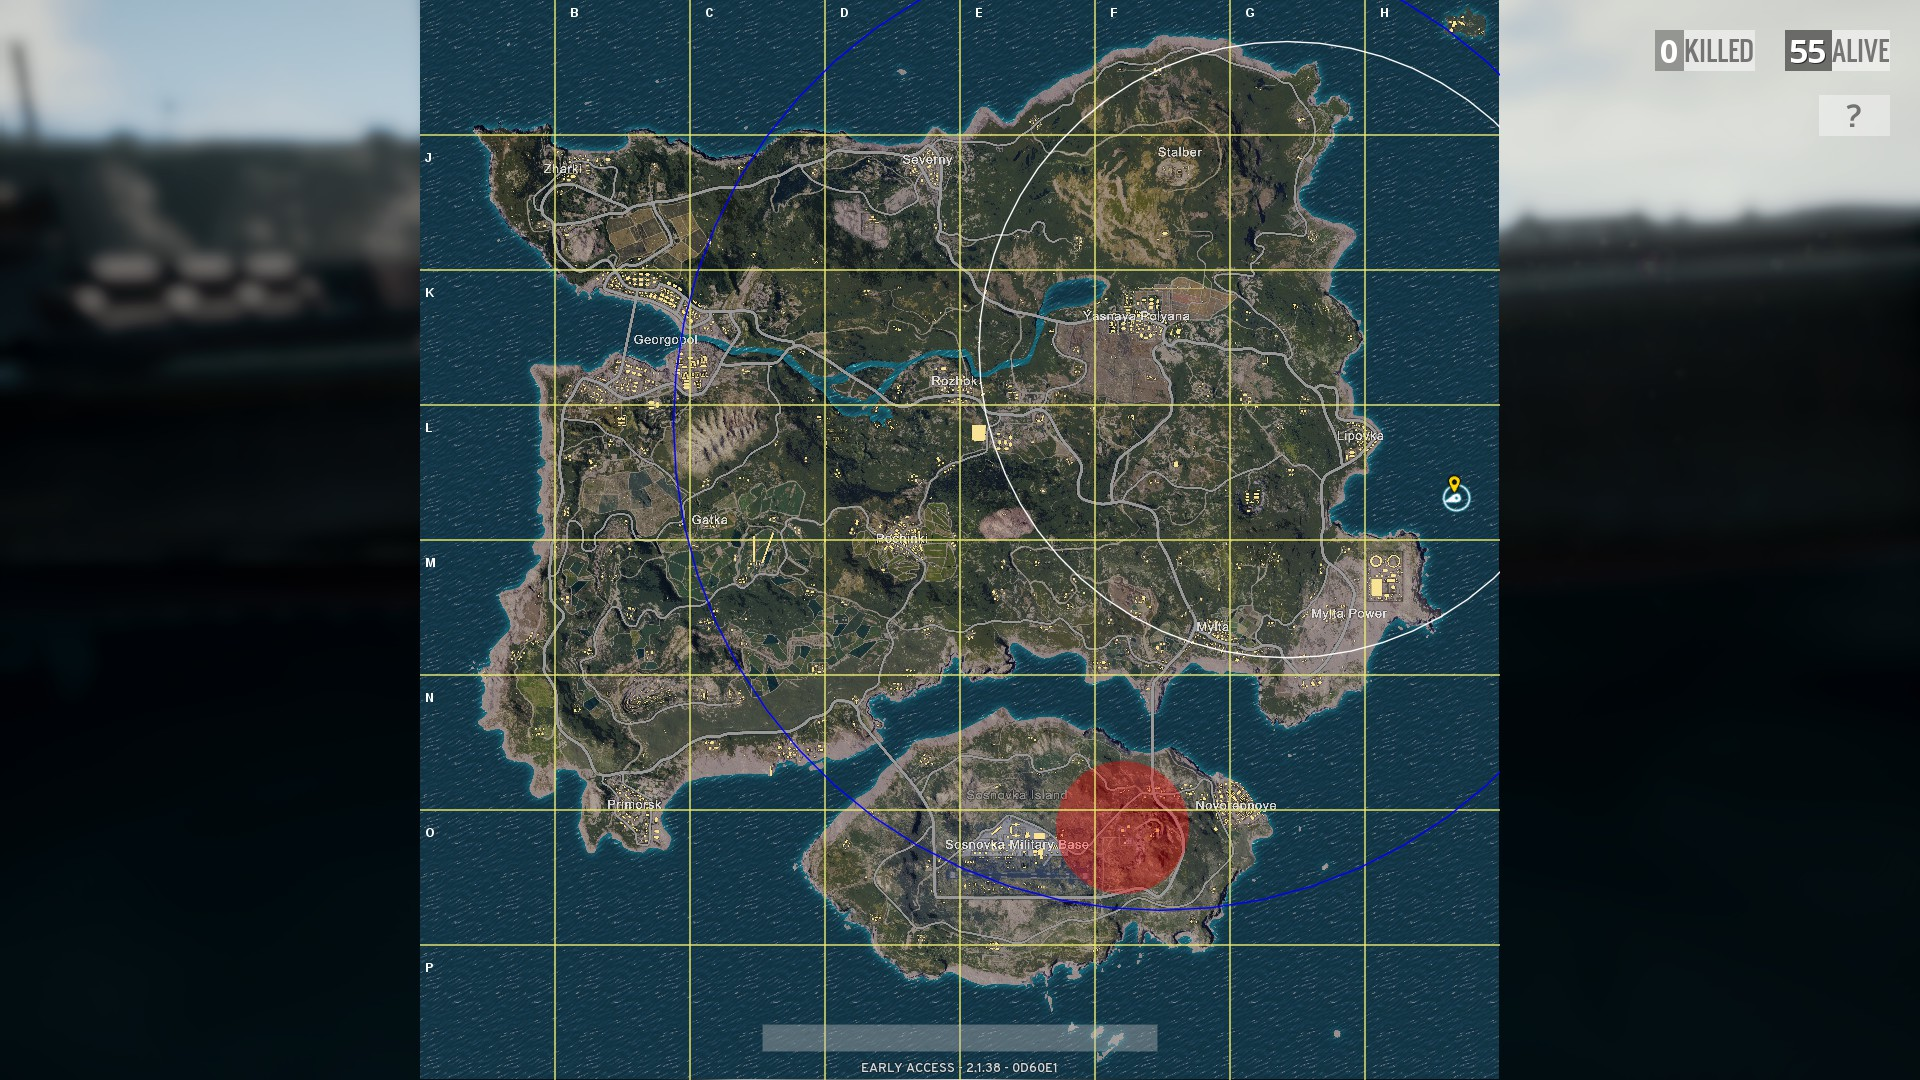 Steam Community :: Guide :: How To Improve In PUBG